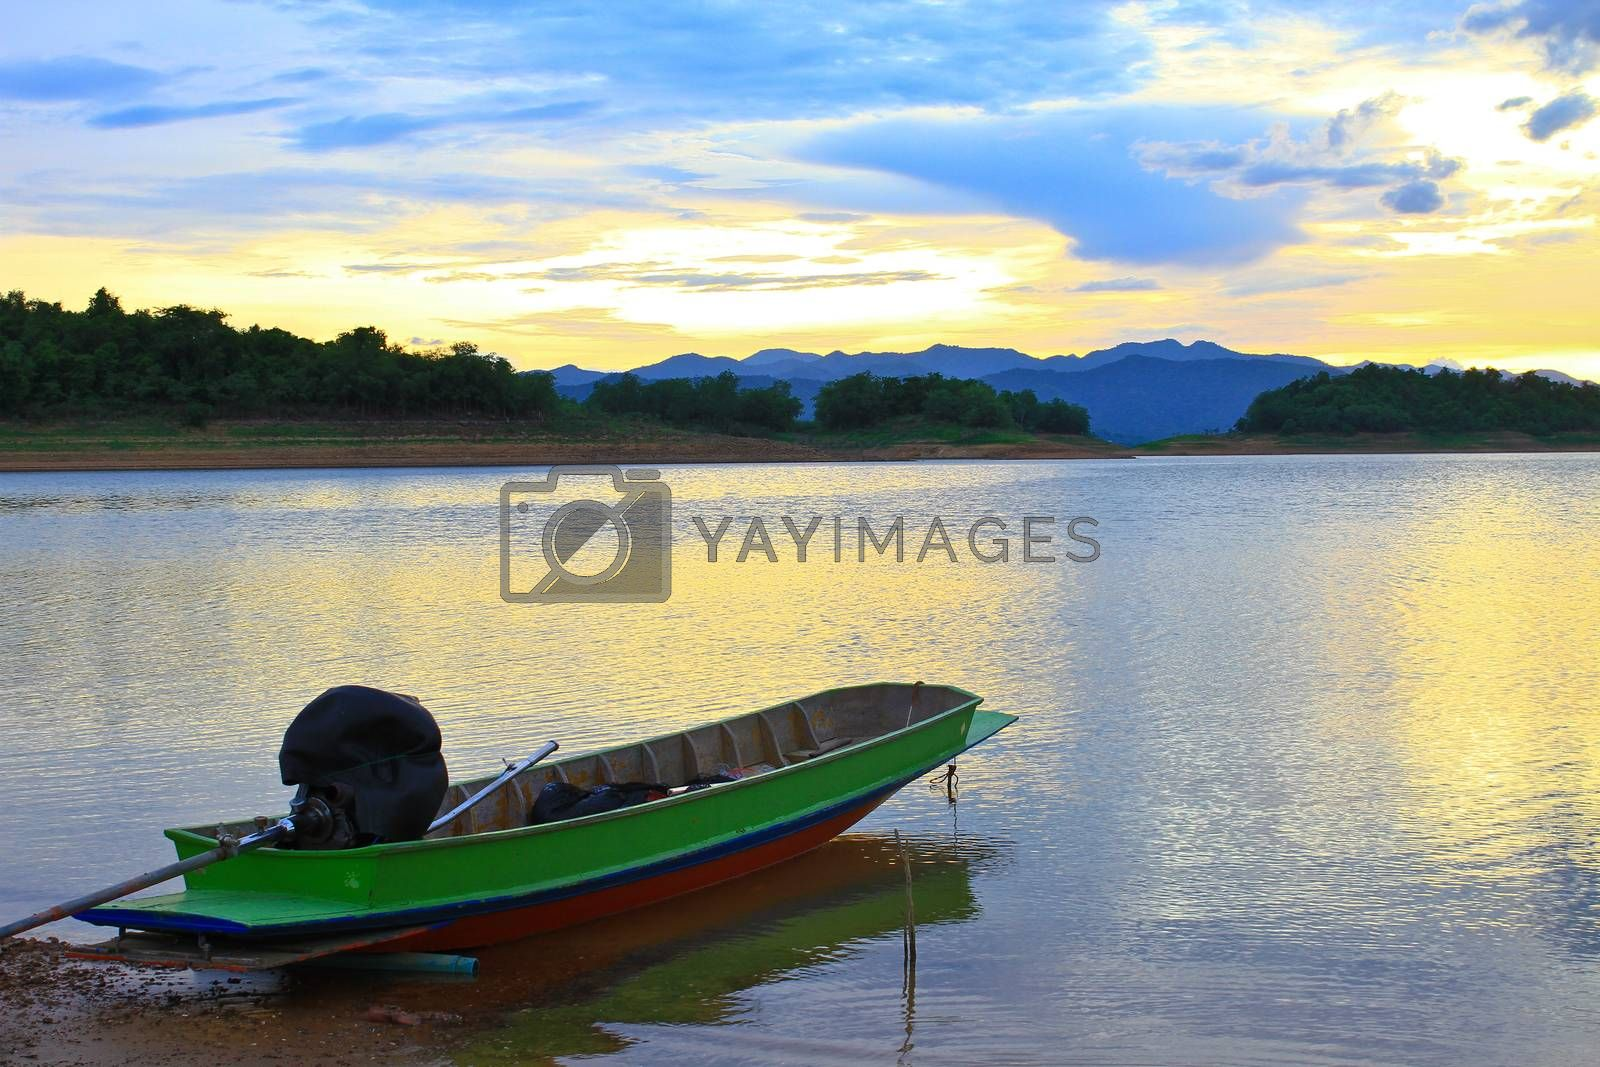 Royalty free image of boat and sunset by forest71